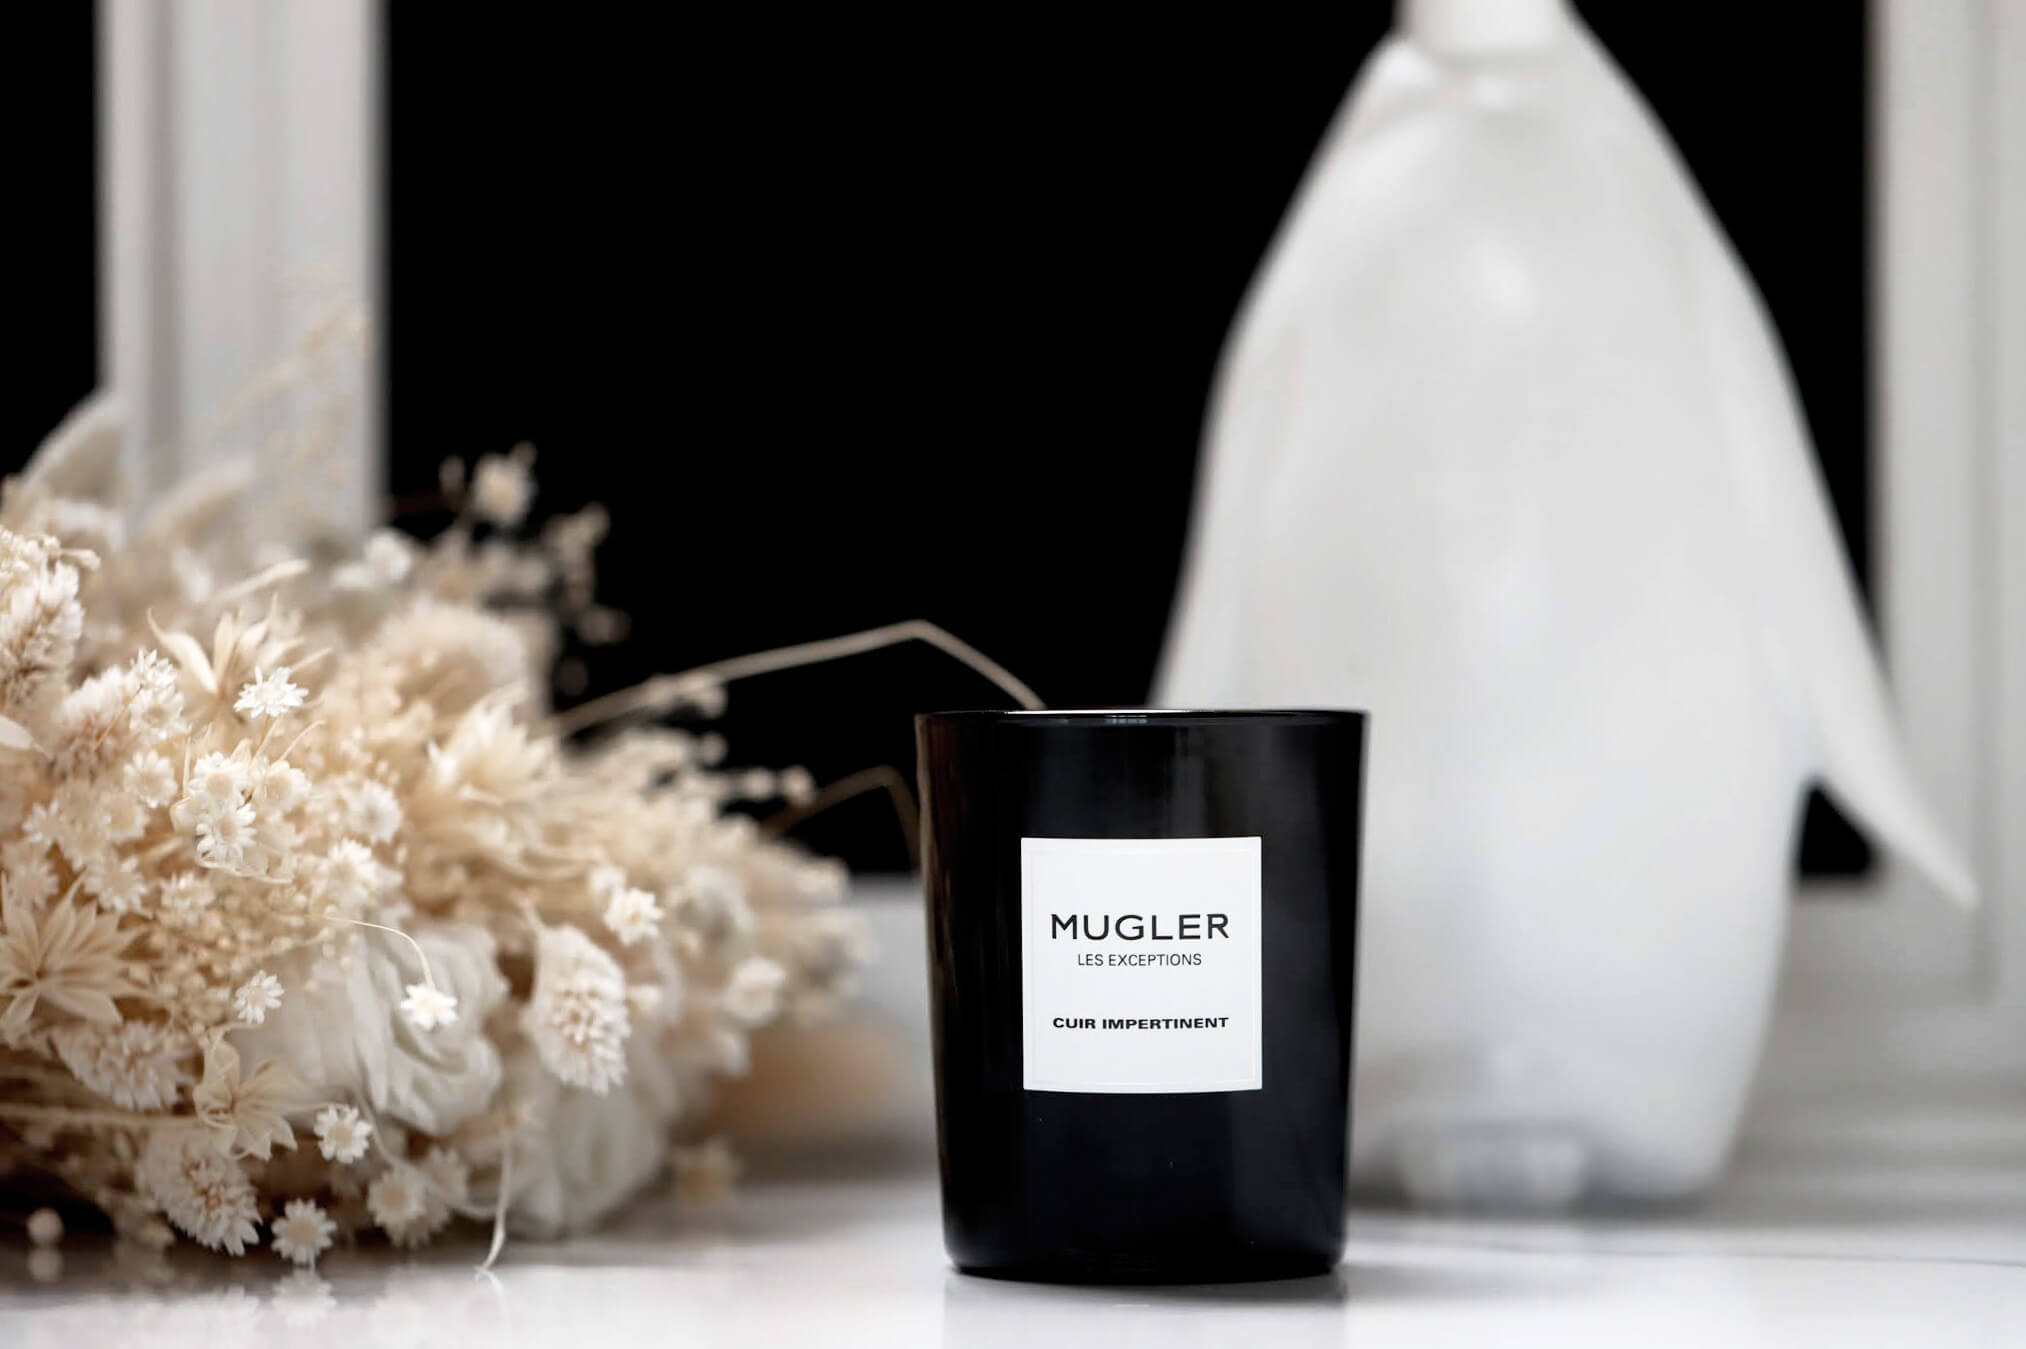 Mugler Les Exceptions Bougie Cuir Impertinent